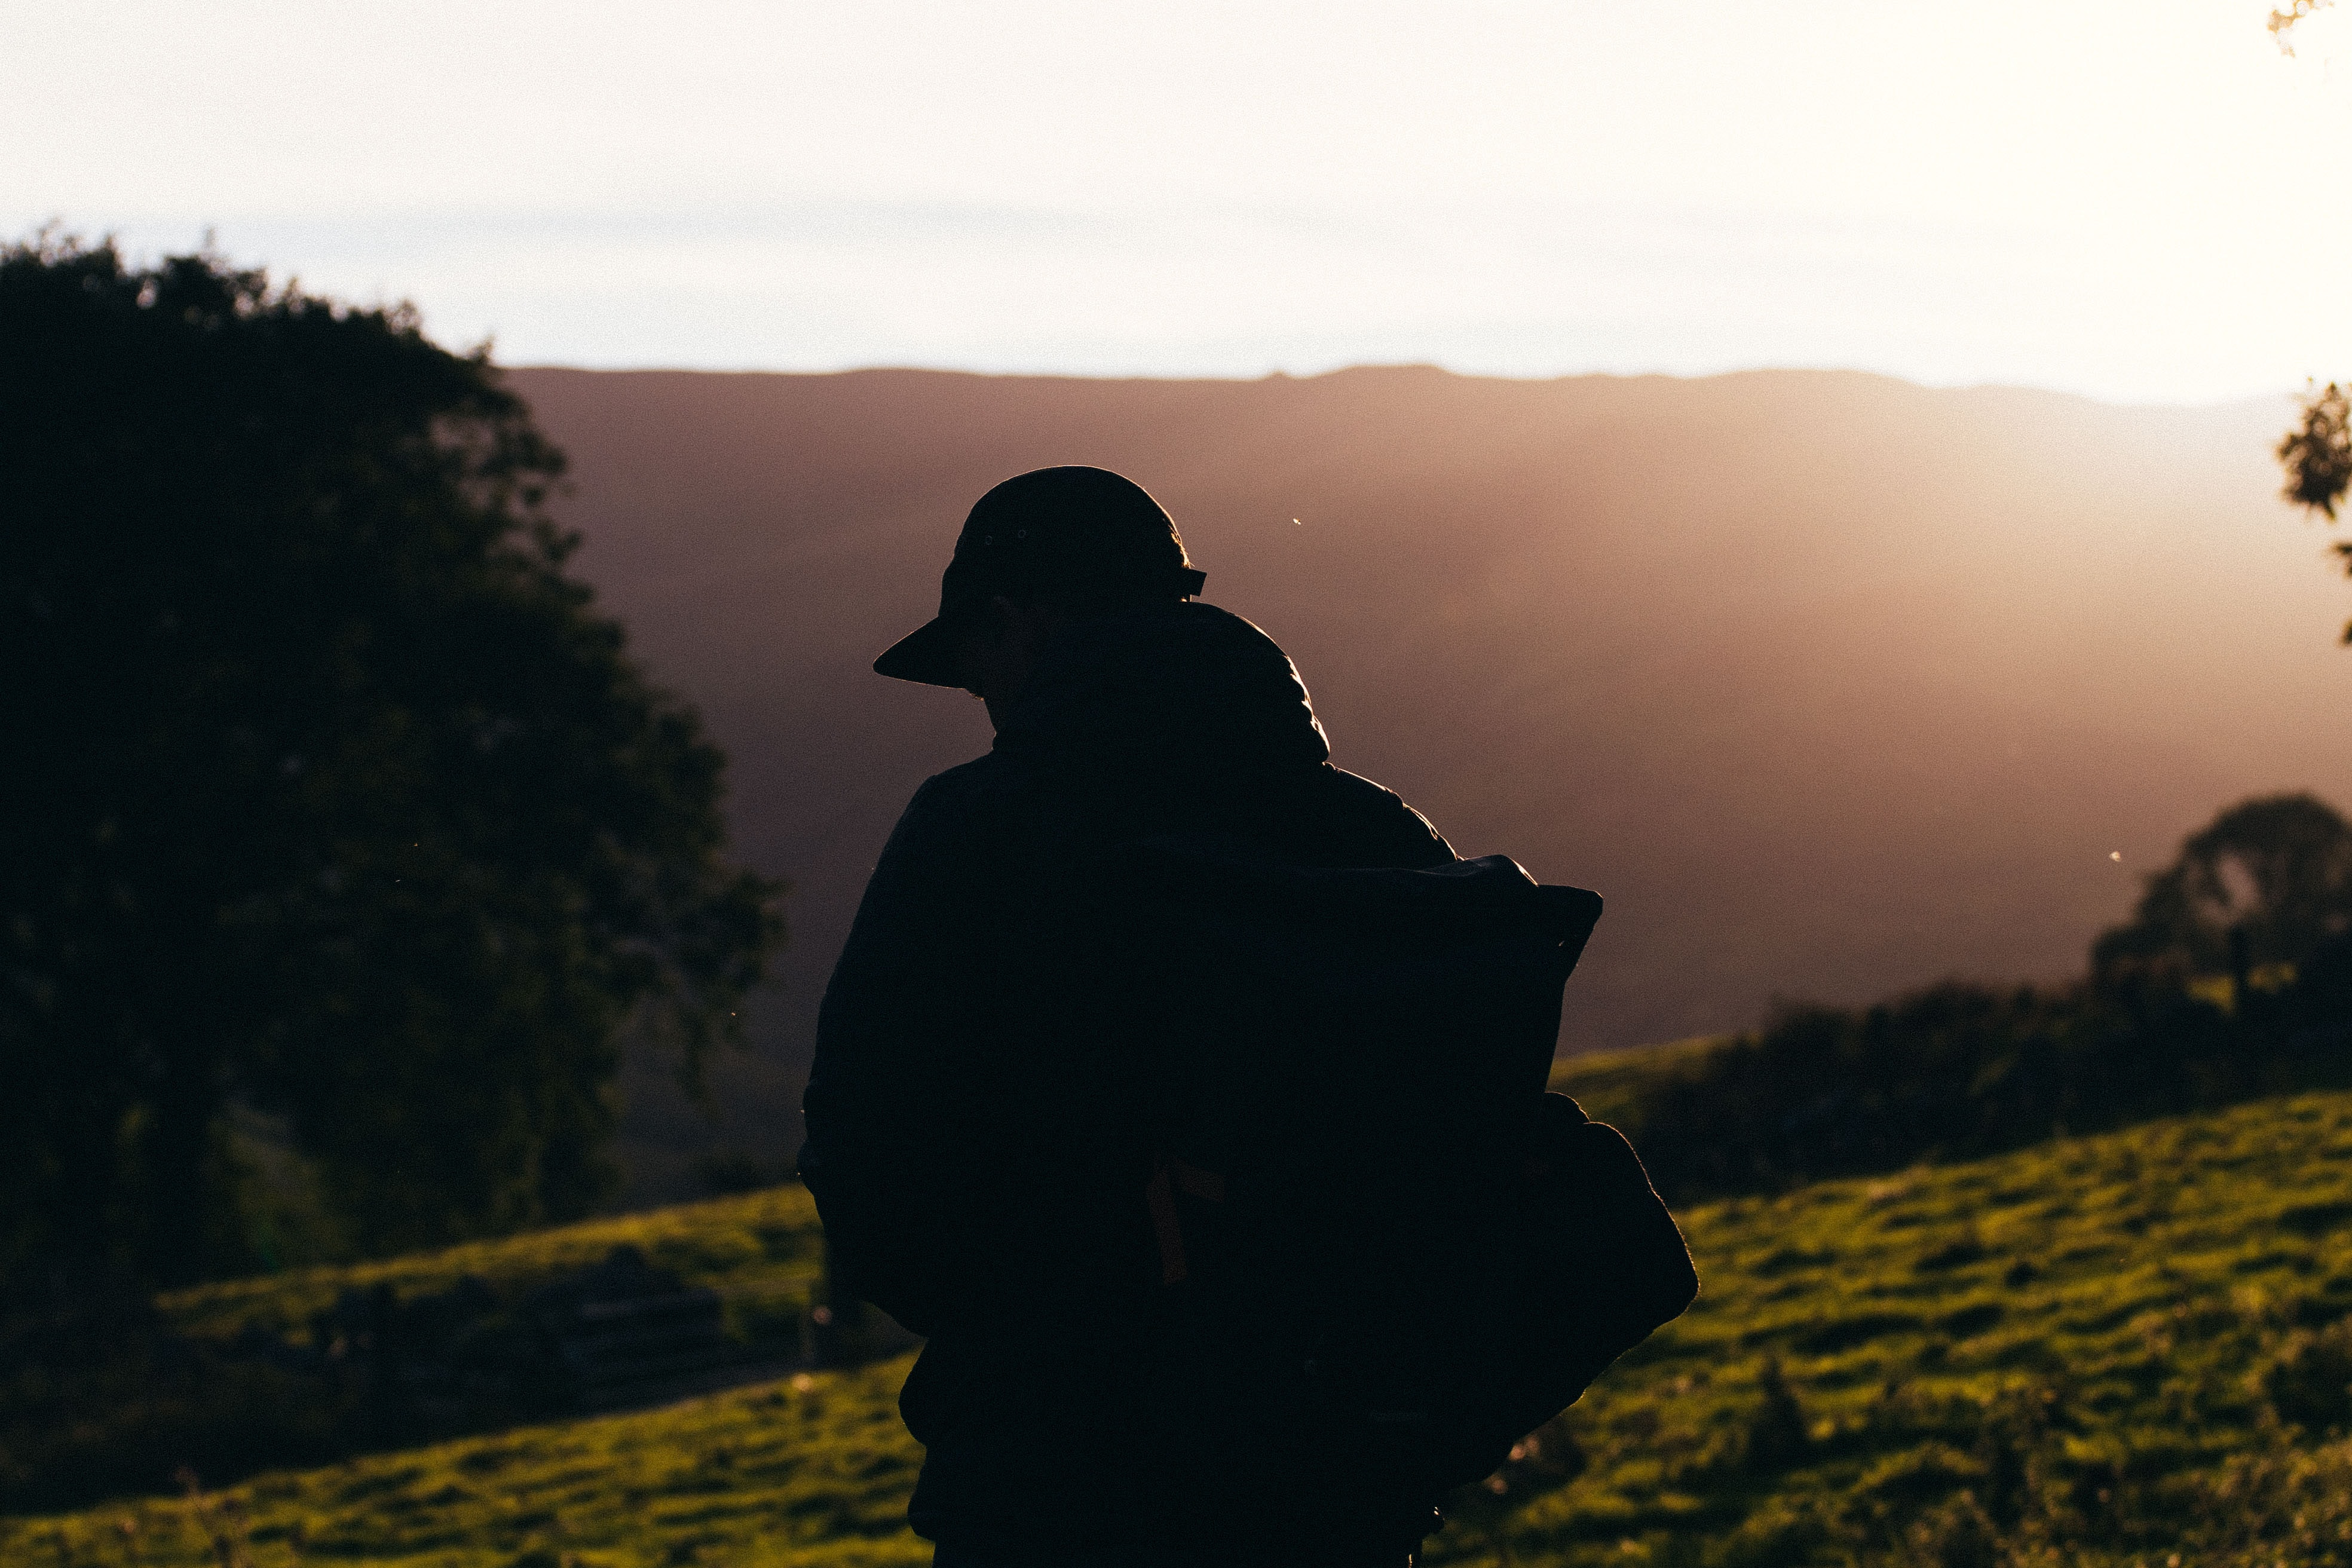 silhouette photo of person carrying backpack during daytime